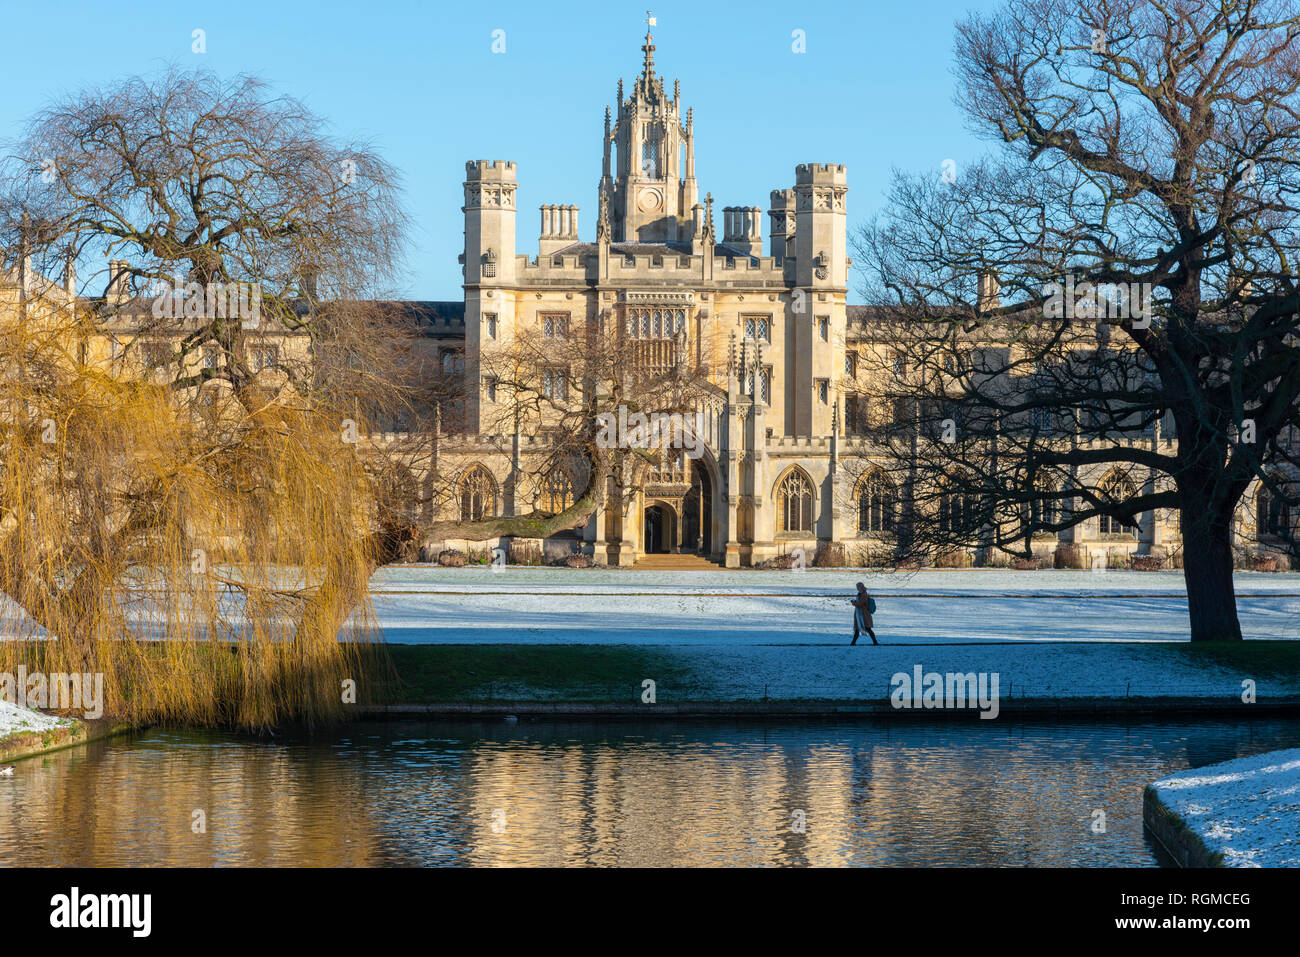 Cambridge, UK. 30th Jan, 2019. St John's College and River Cam, Cambridge, after overnight snow, Cambridge, UK. 30th Jan, 2019. UK Weather Credit: Alan Copson City Pictures/Alamy Live News Stock Photo